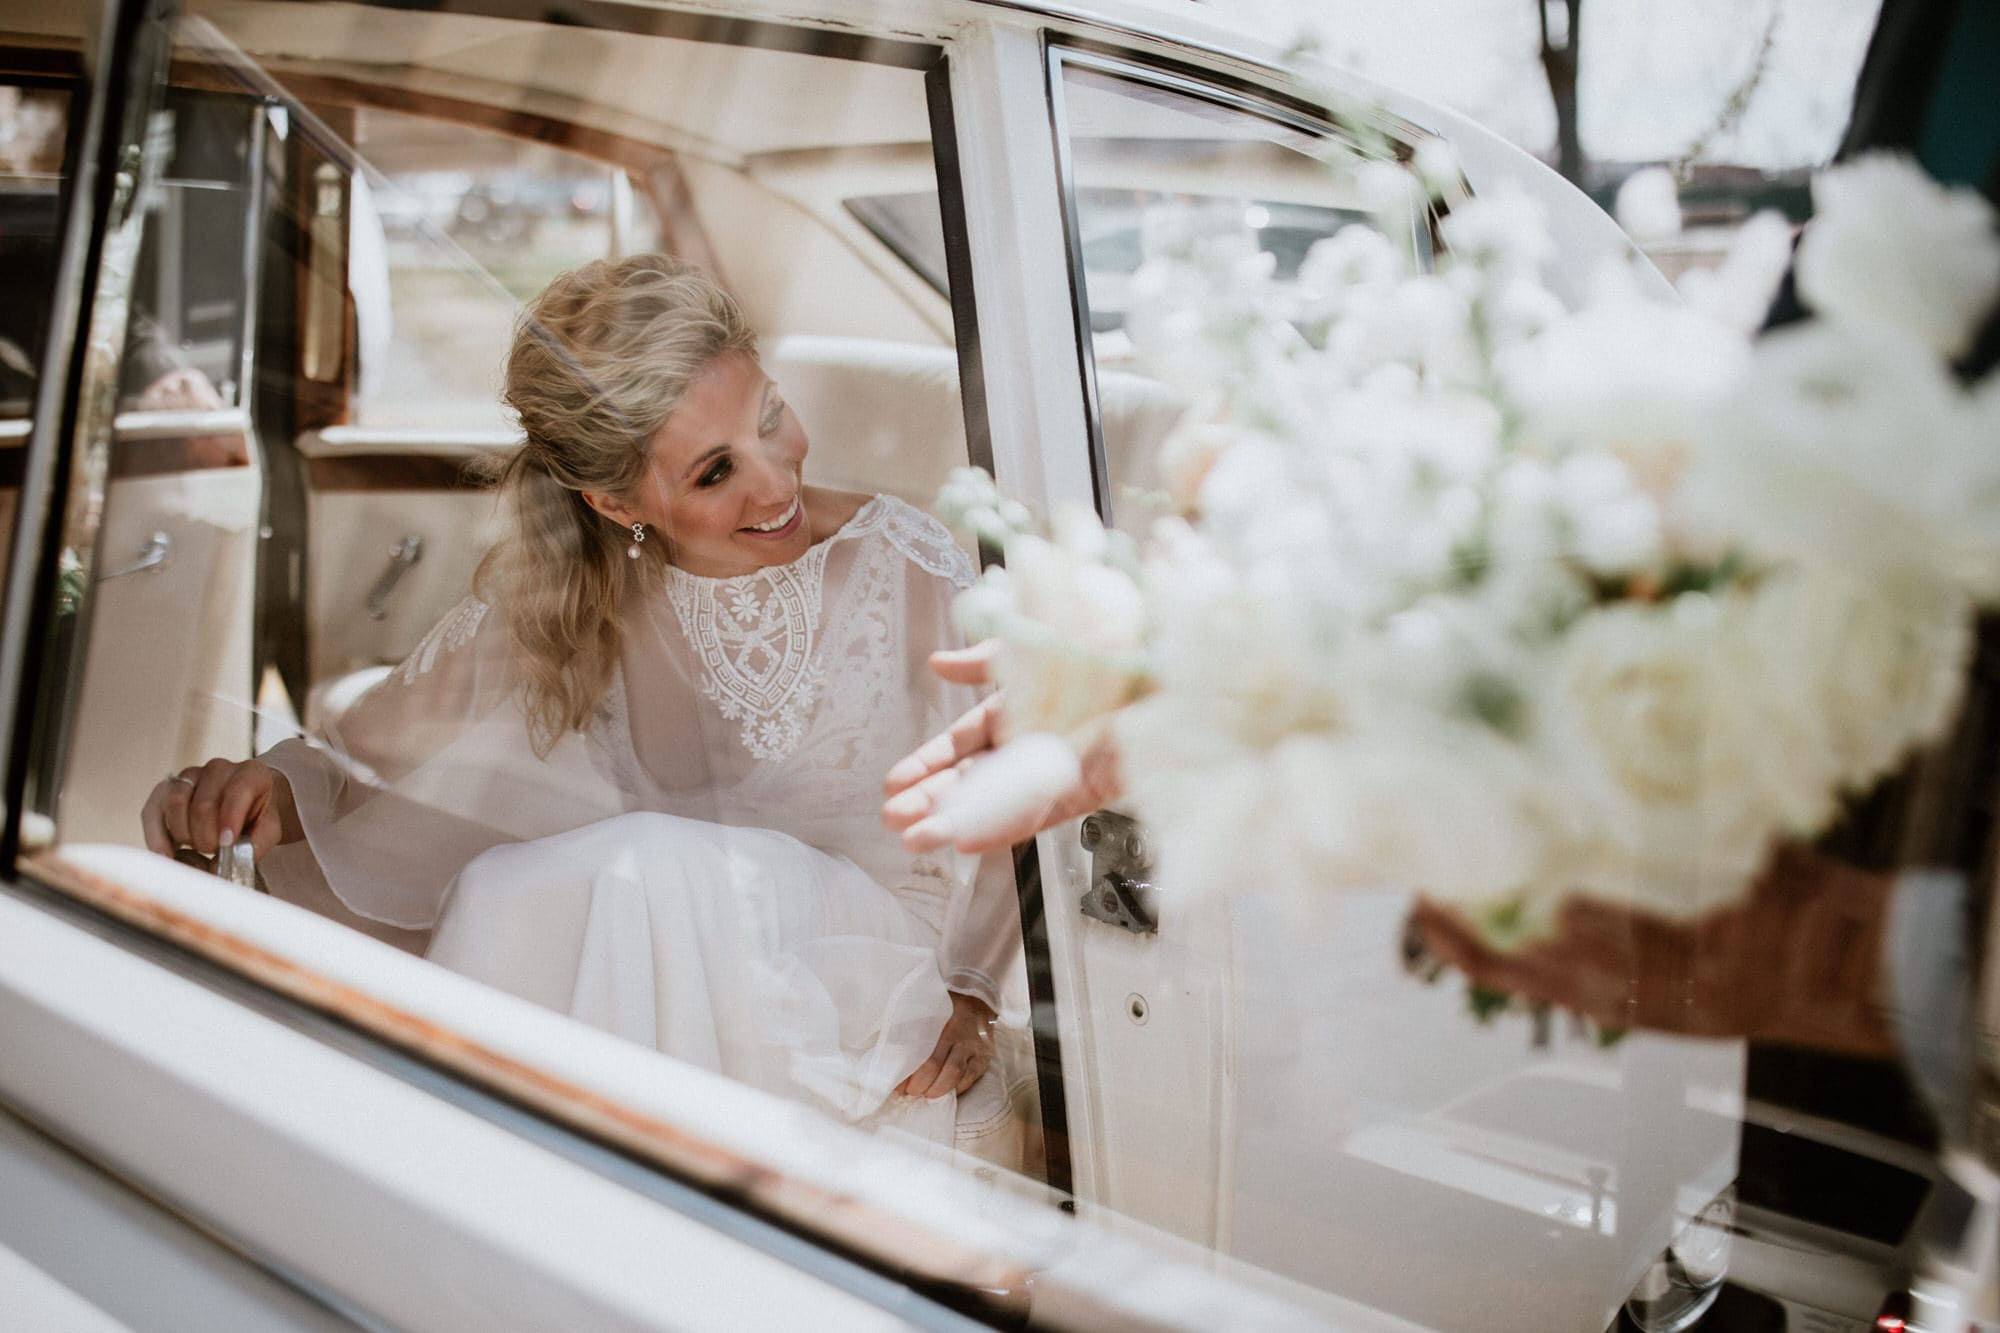 Entrepots Dominion Wedding In Montreal - Bride stepping out of car - Wedding Photographer Brent Calis